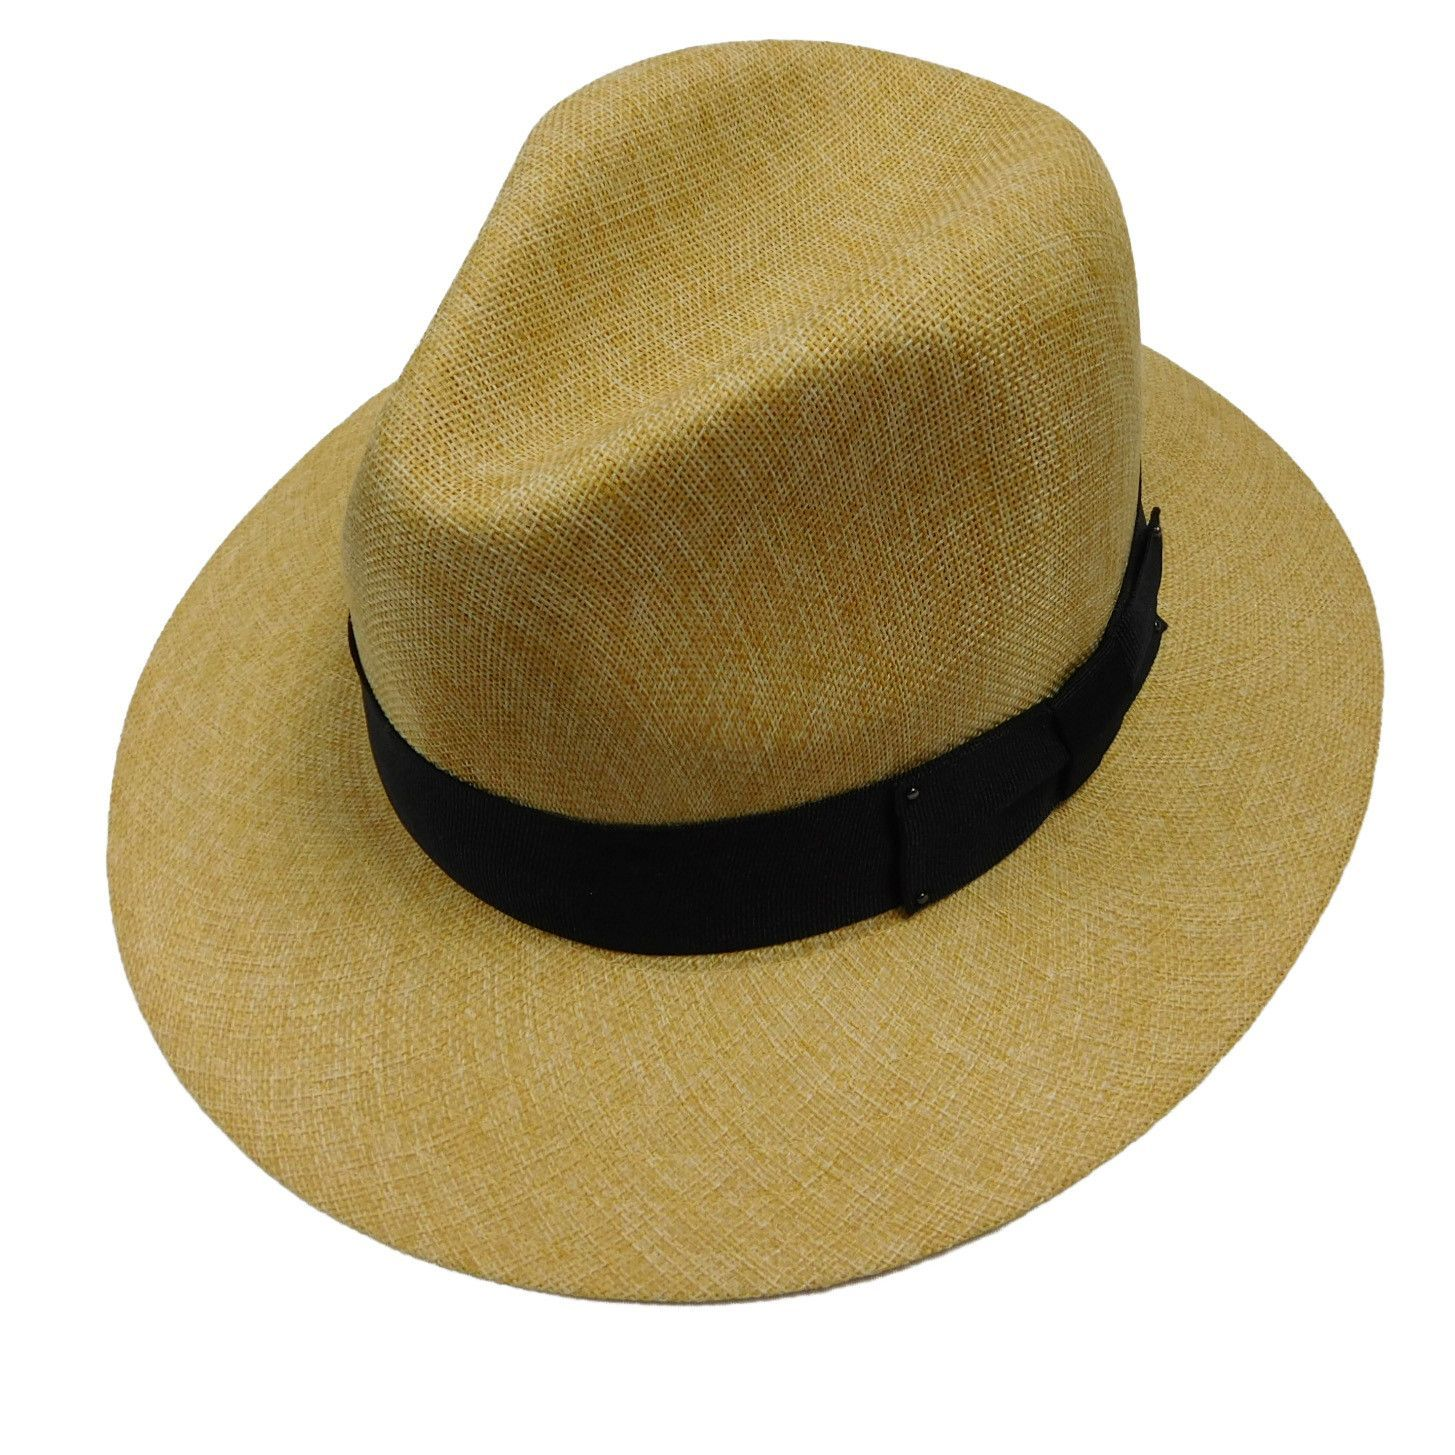 8e4b76406cd1e Elegant Safari Hat by Milani